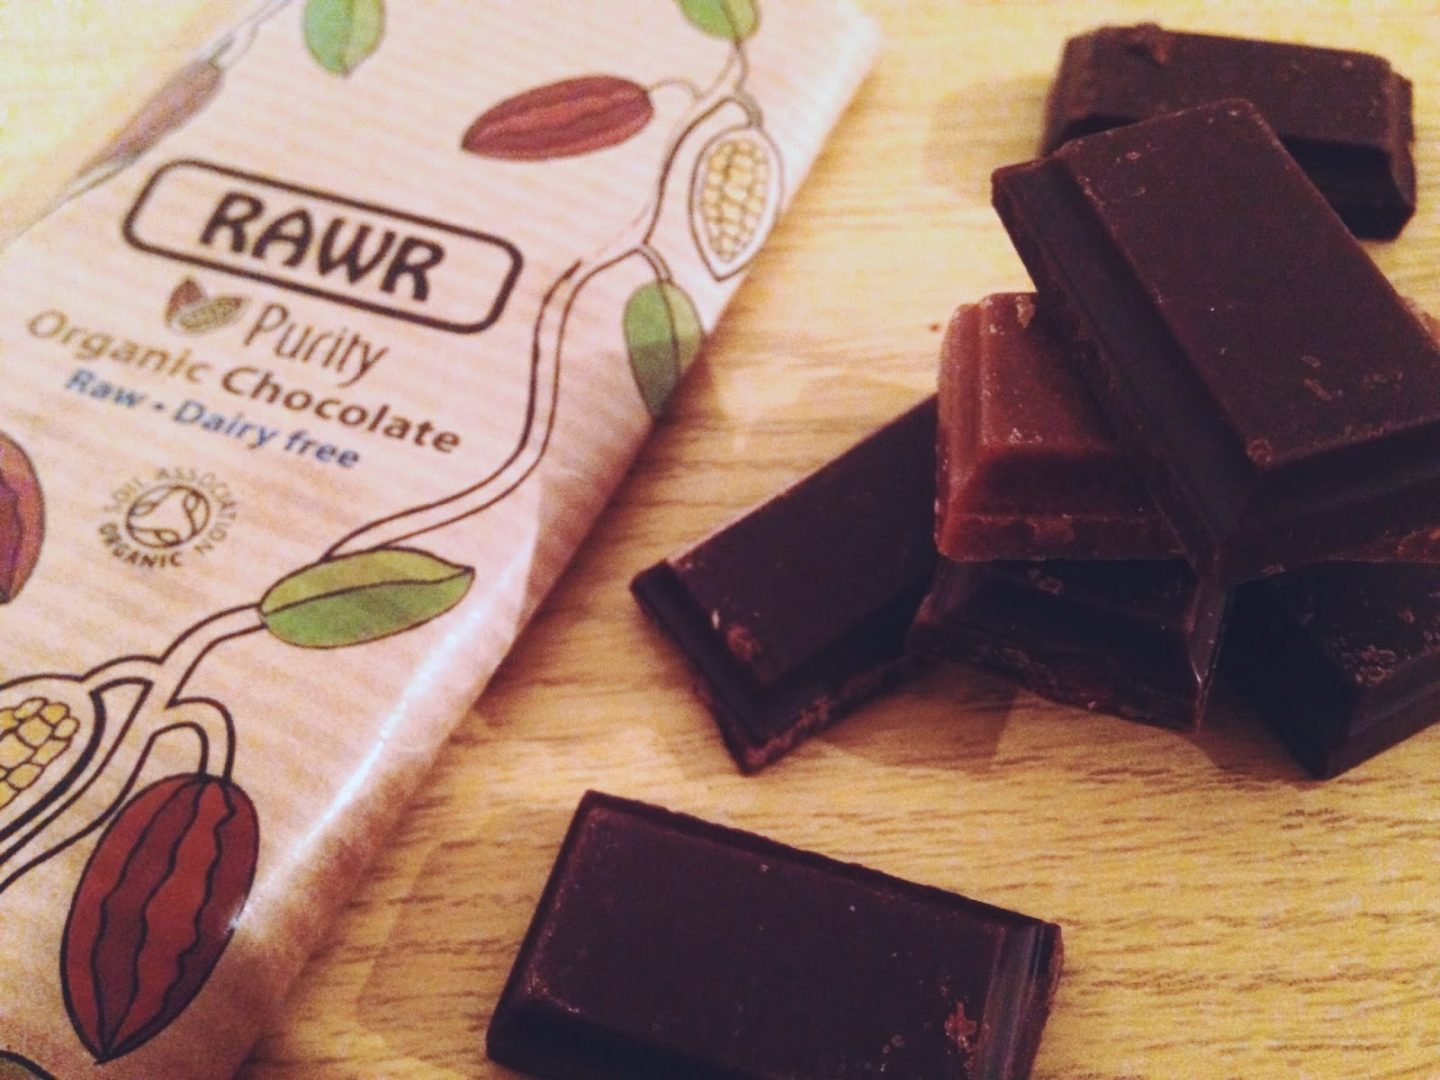 Review of Rawr Chocolate | Curiously Conscious